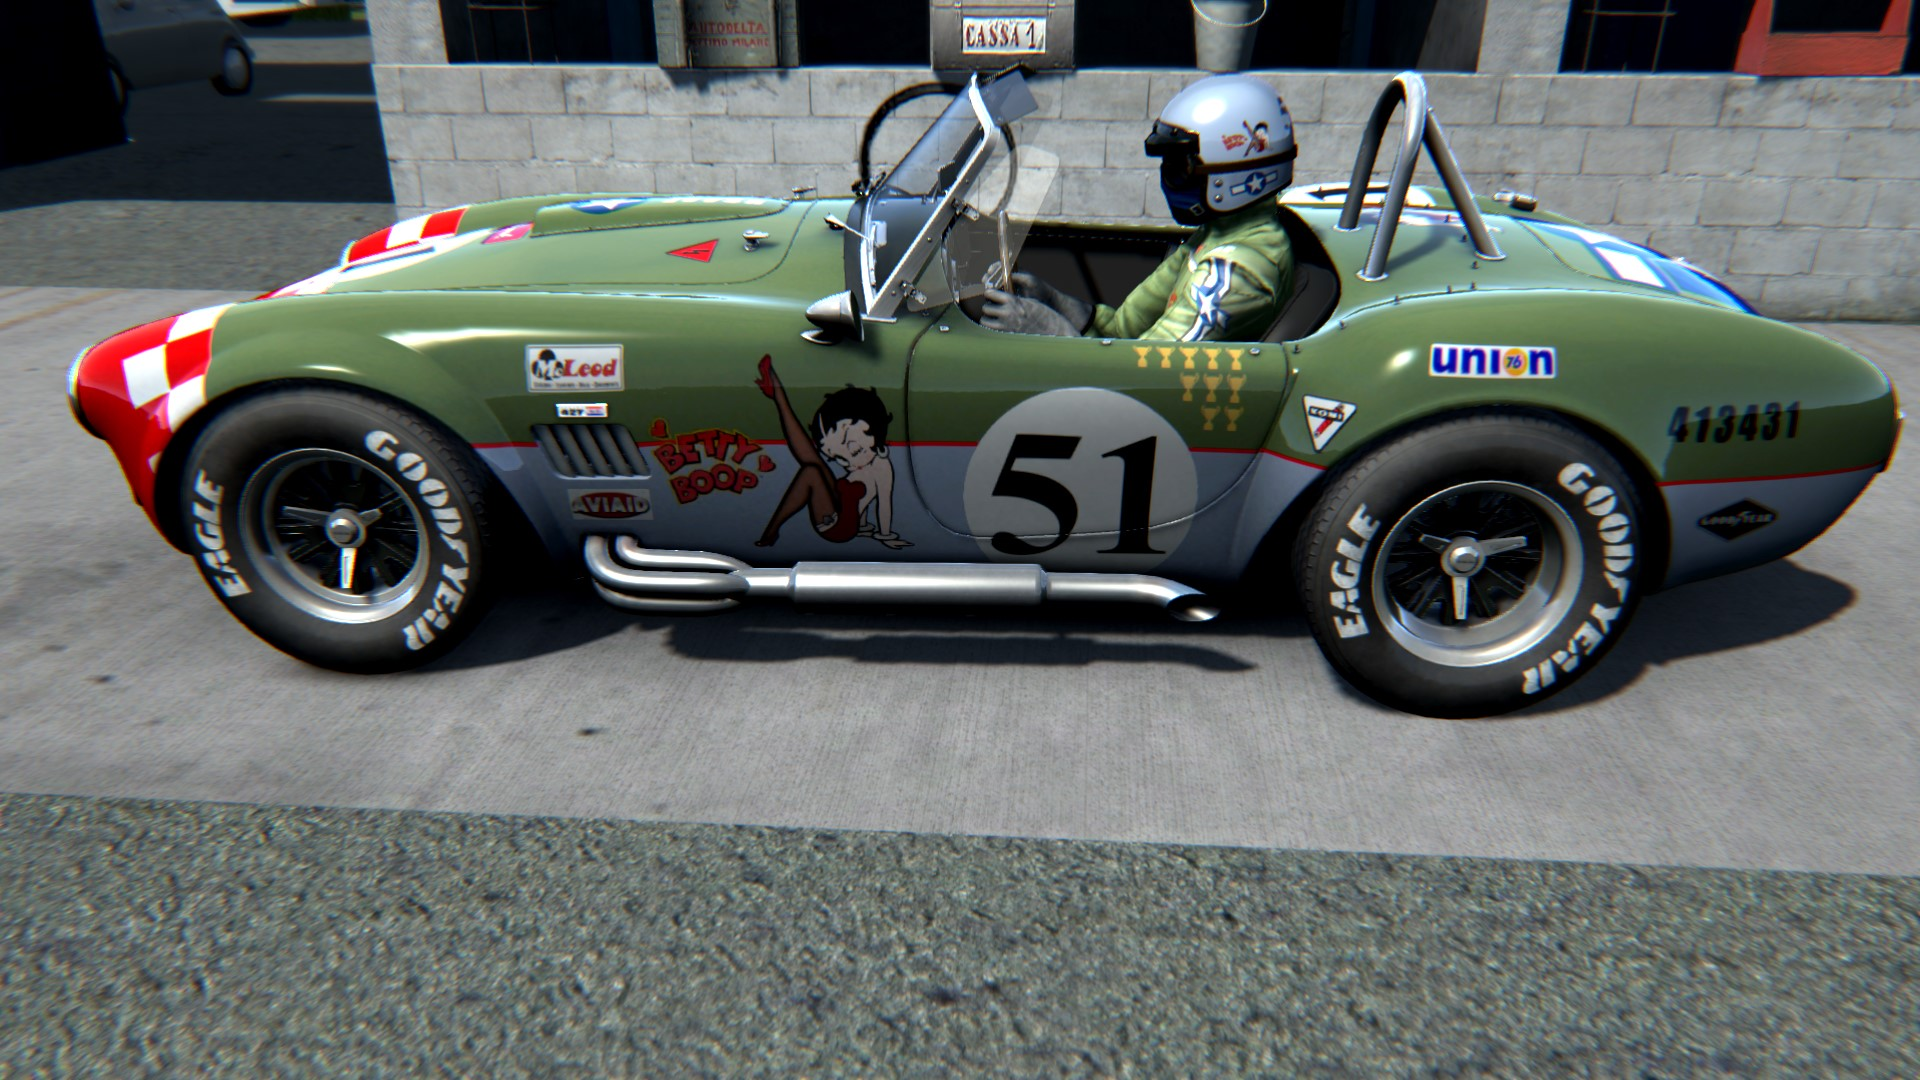 Screenshot_shelby_cobra_monza66_27-9-115-20-20-57.jpg